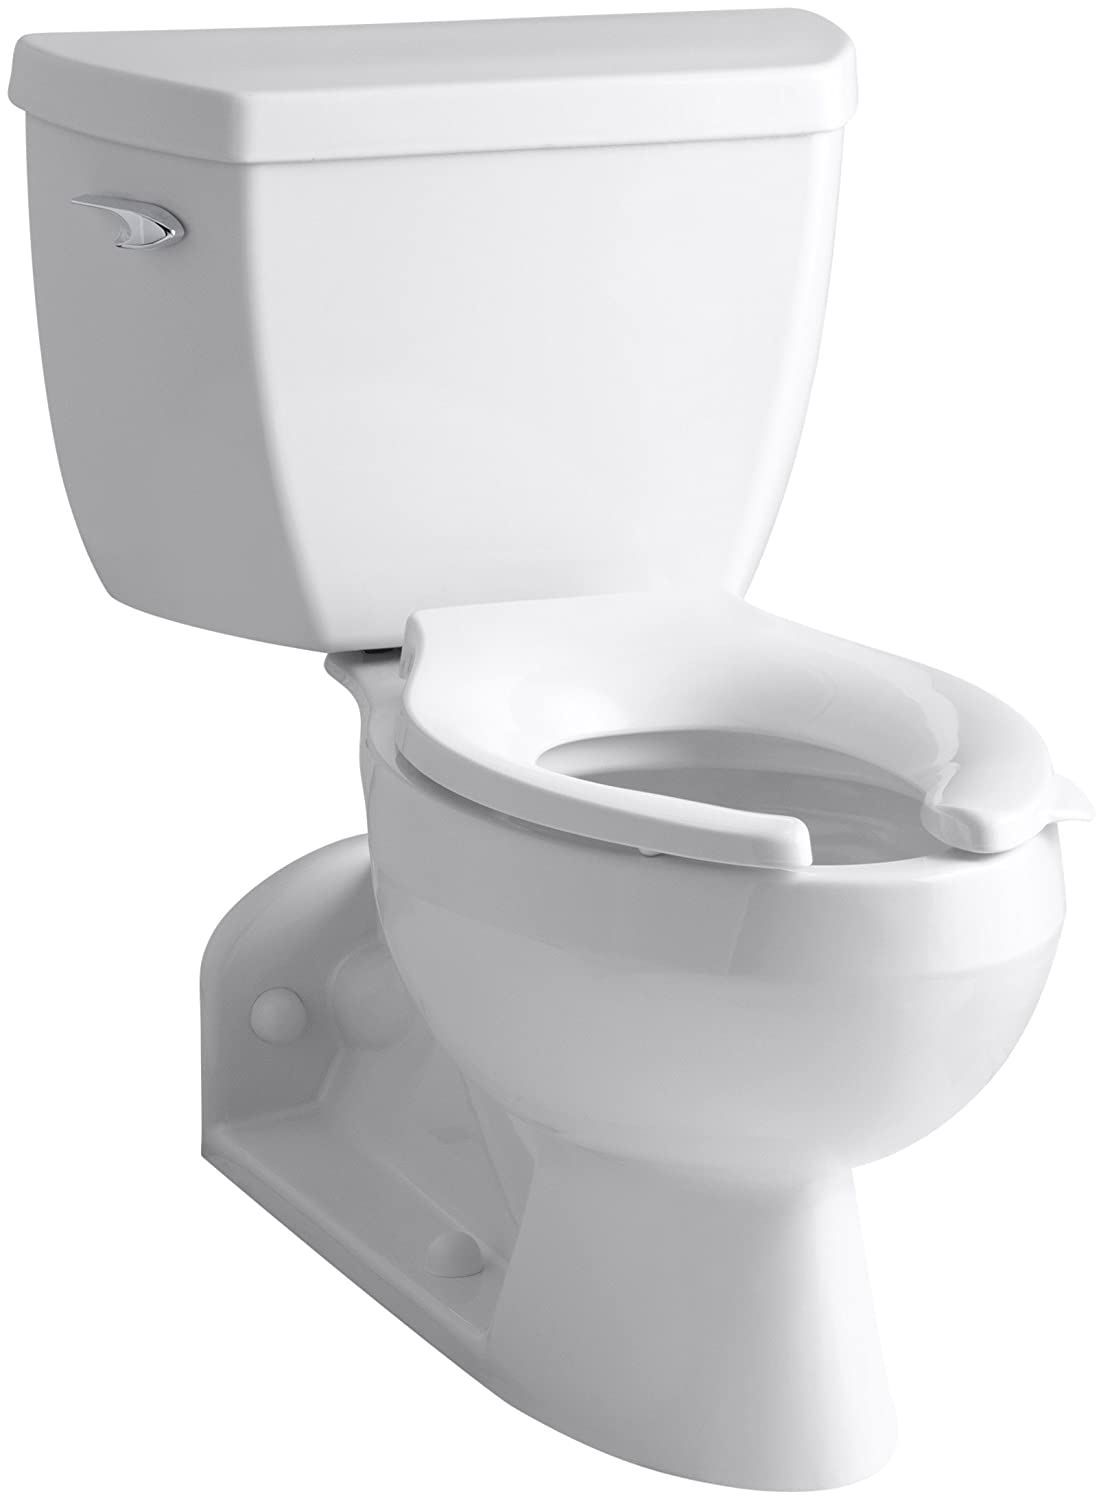 Kohler elongated back discharge toilet